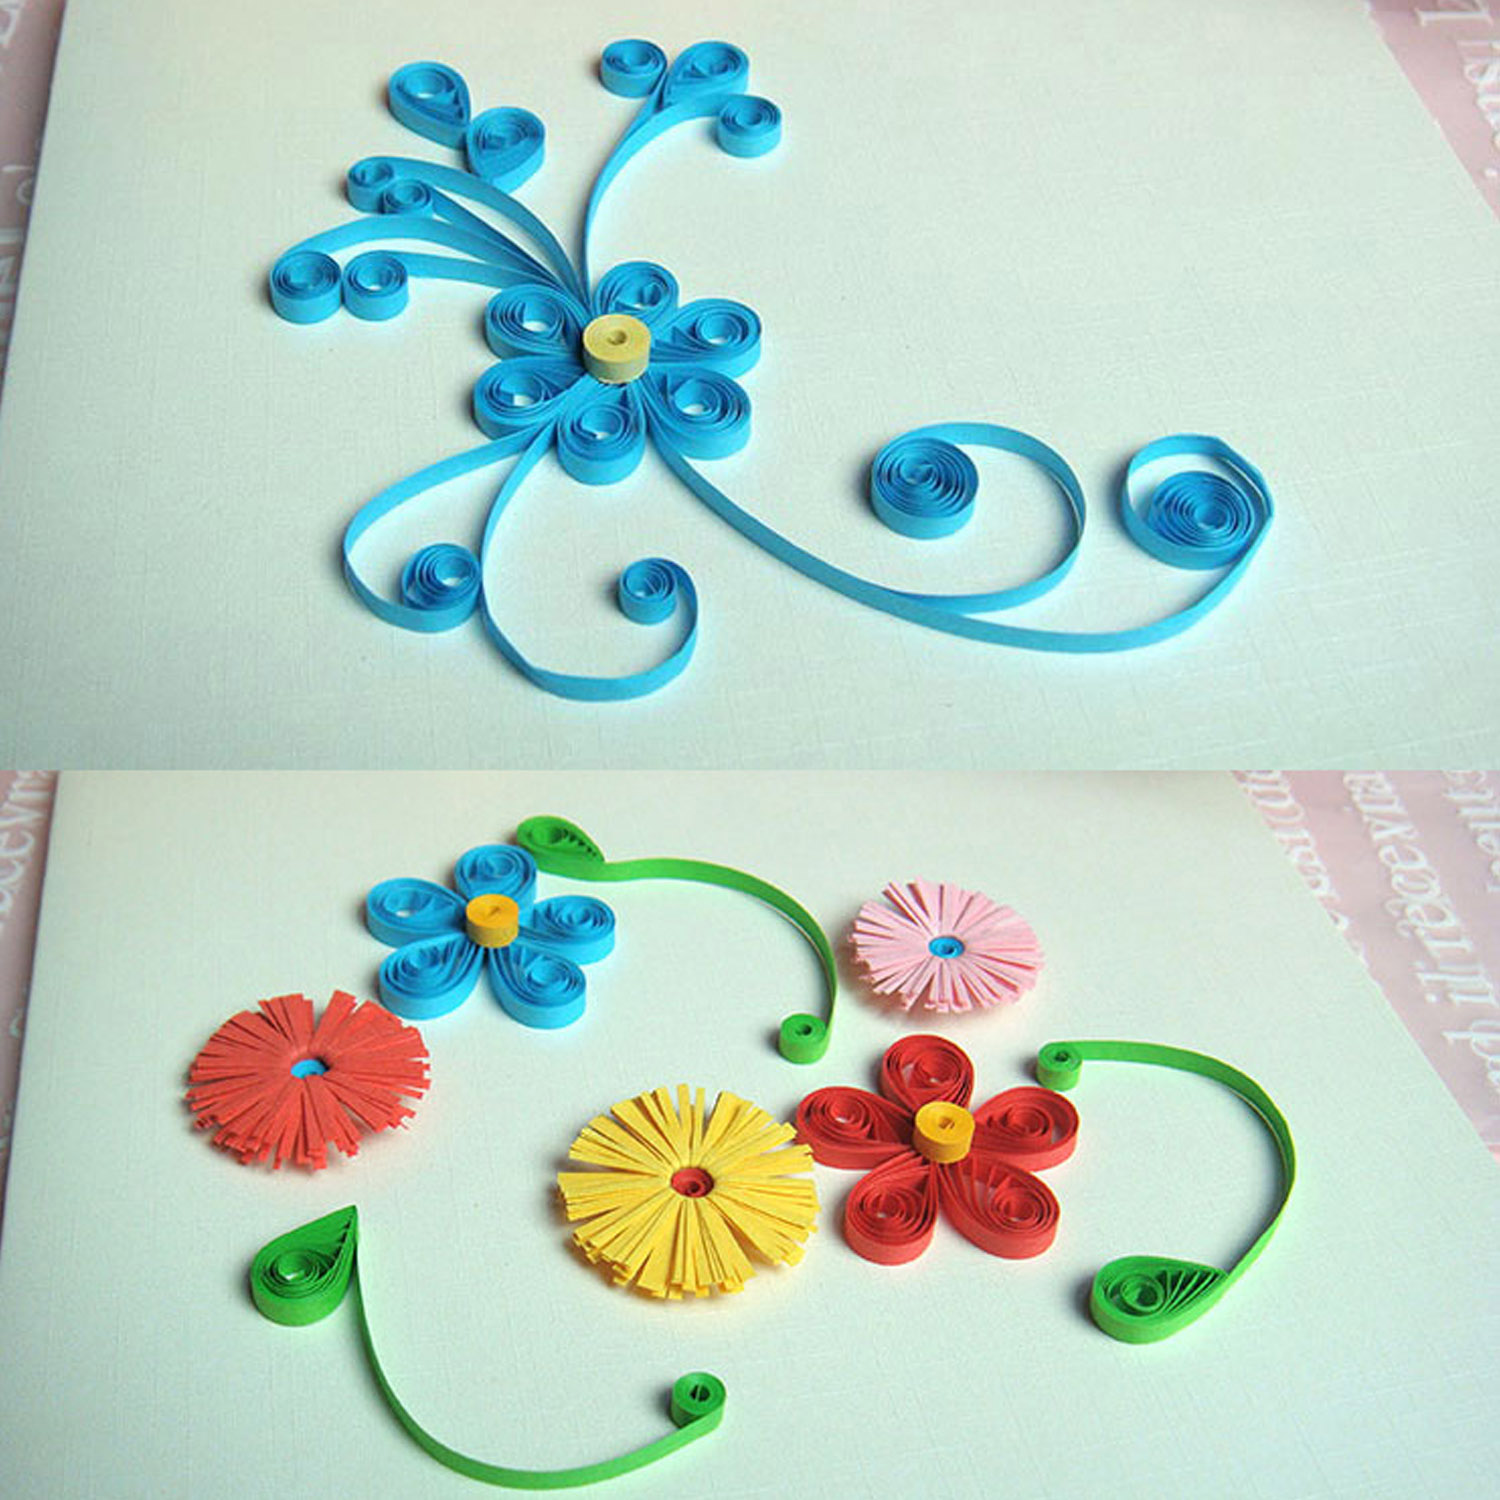 5pcs Different Size Origami Paper Quilling Slotted Tools Kit For